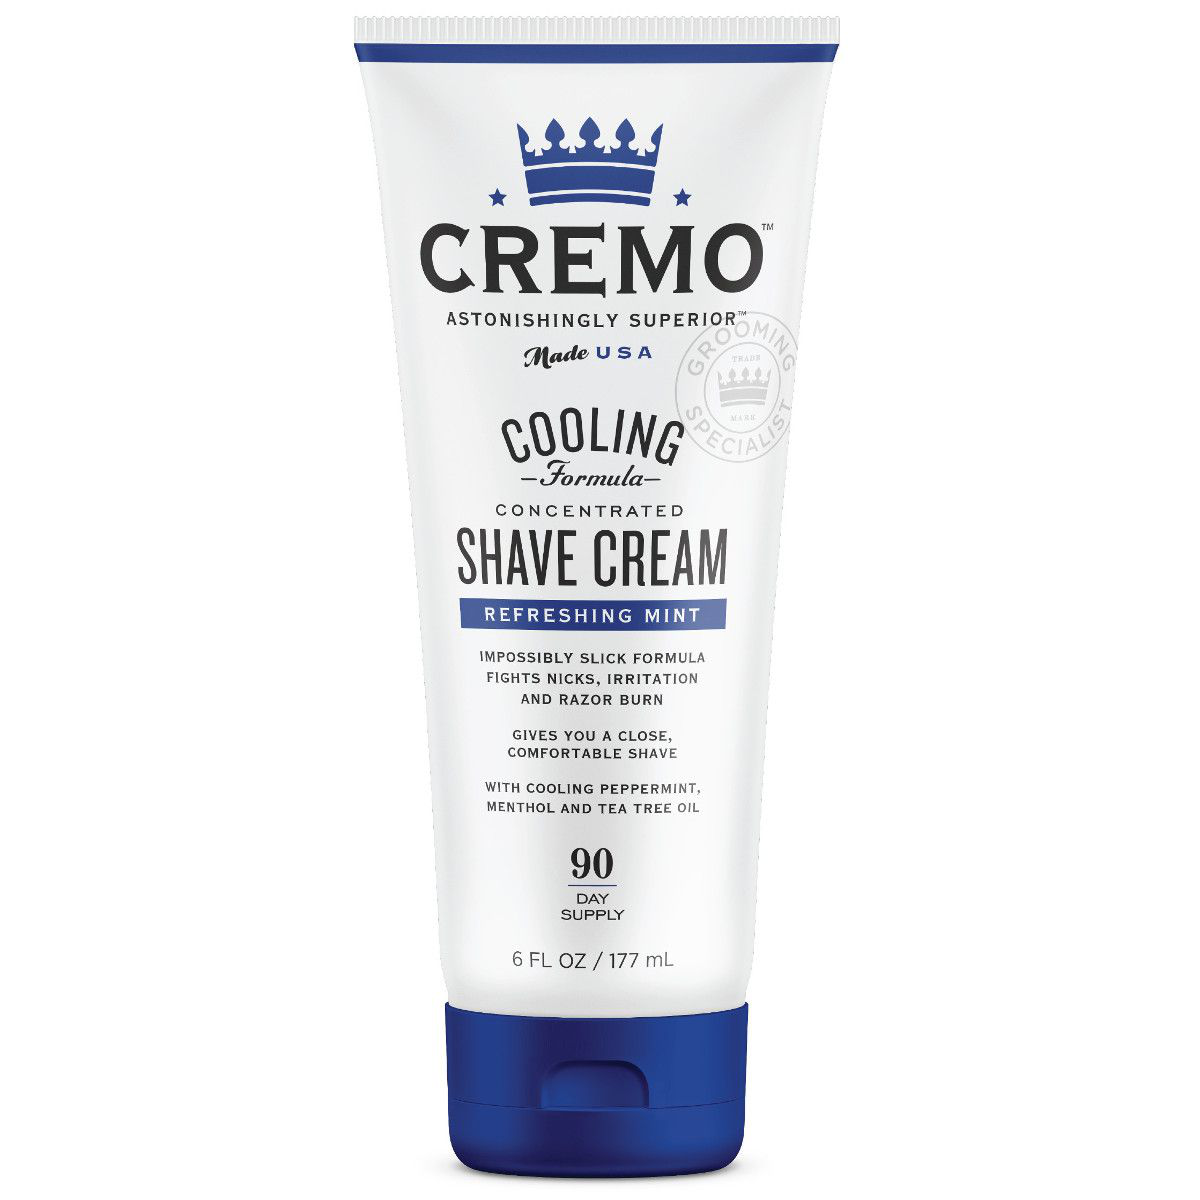 Cremo - Cooling - Cream image